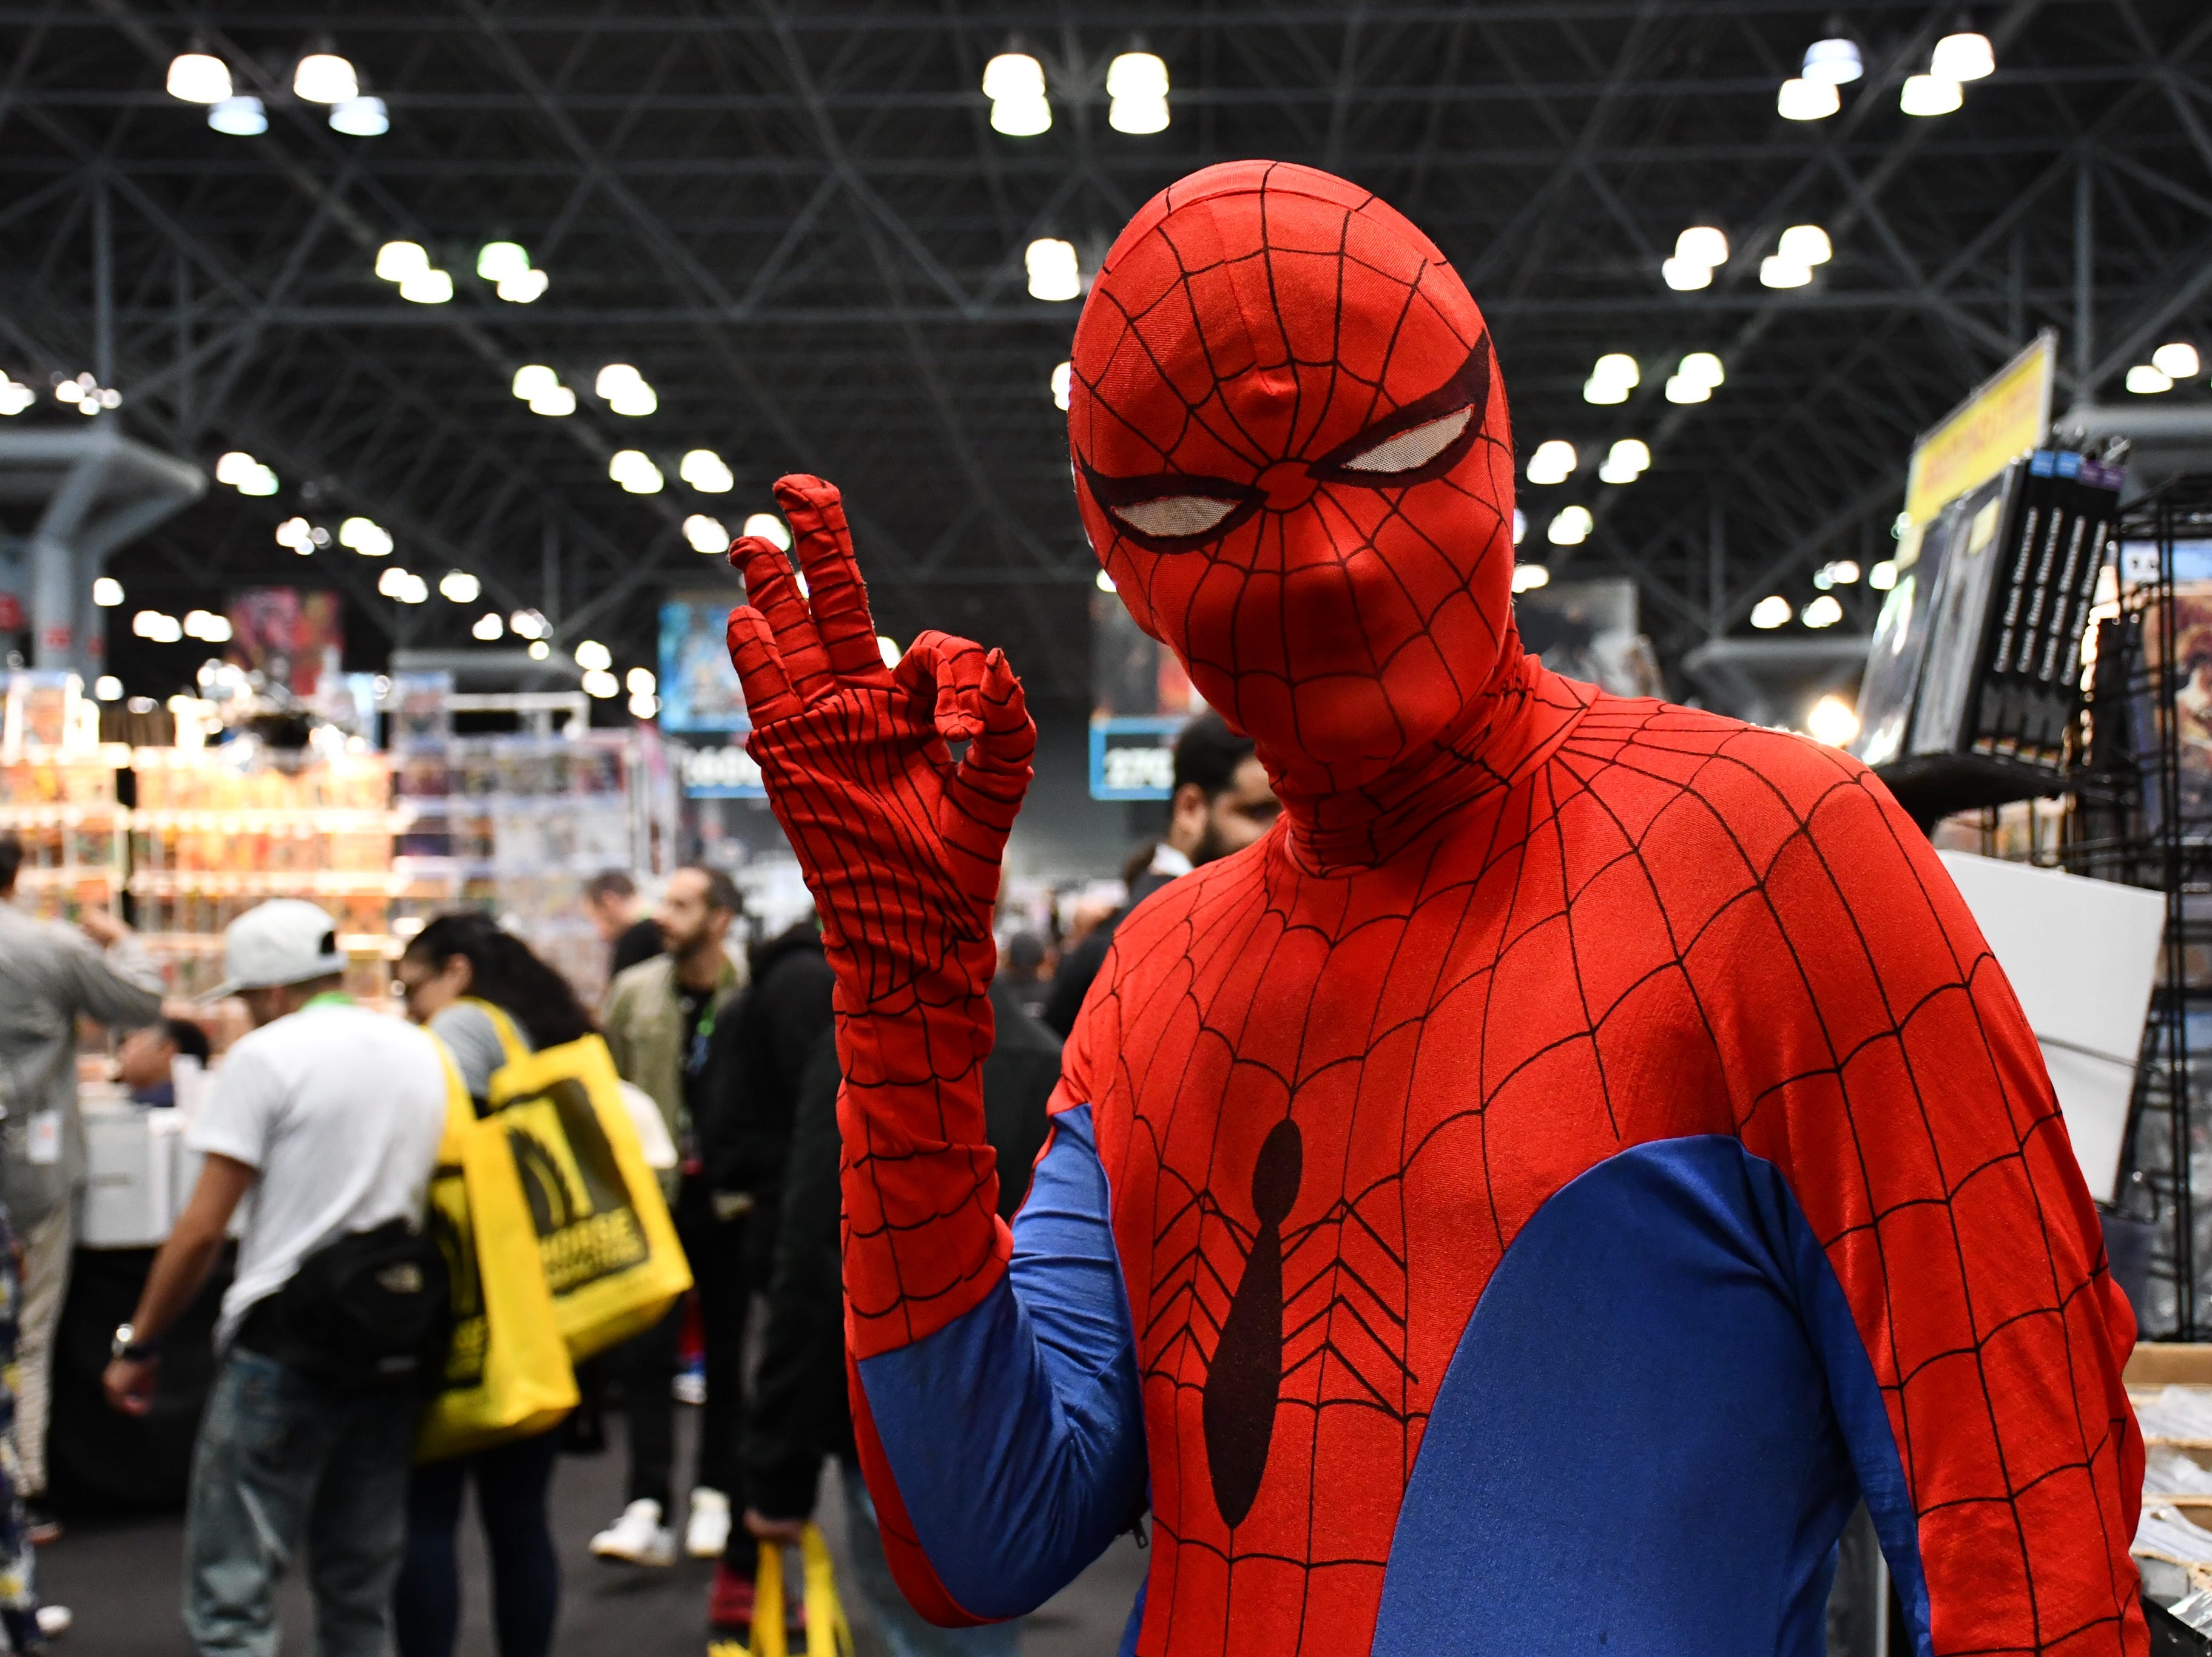 Scenes from Day 2 of the New York Comic Con at the Jacob K. Javits Convention Center in New York City on Friday, Oct. 5, 2018.